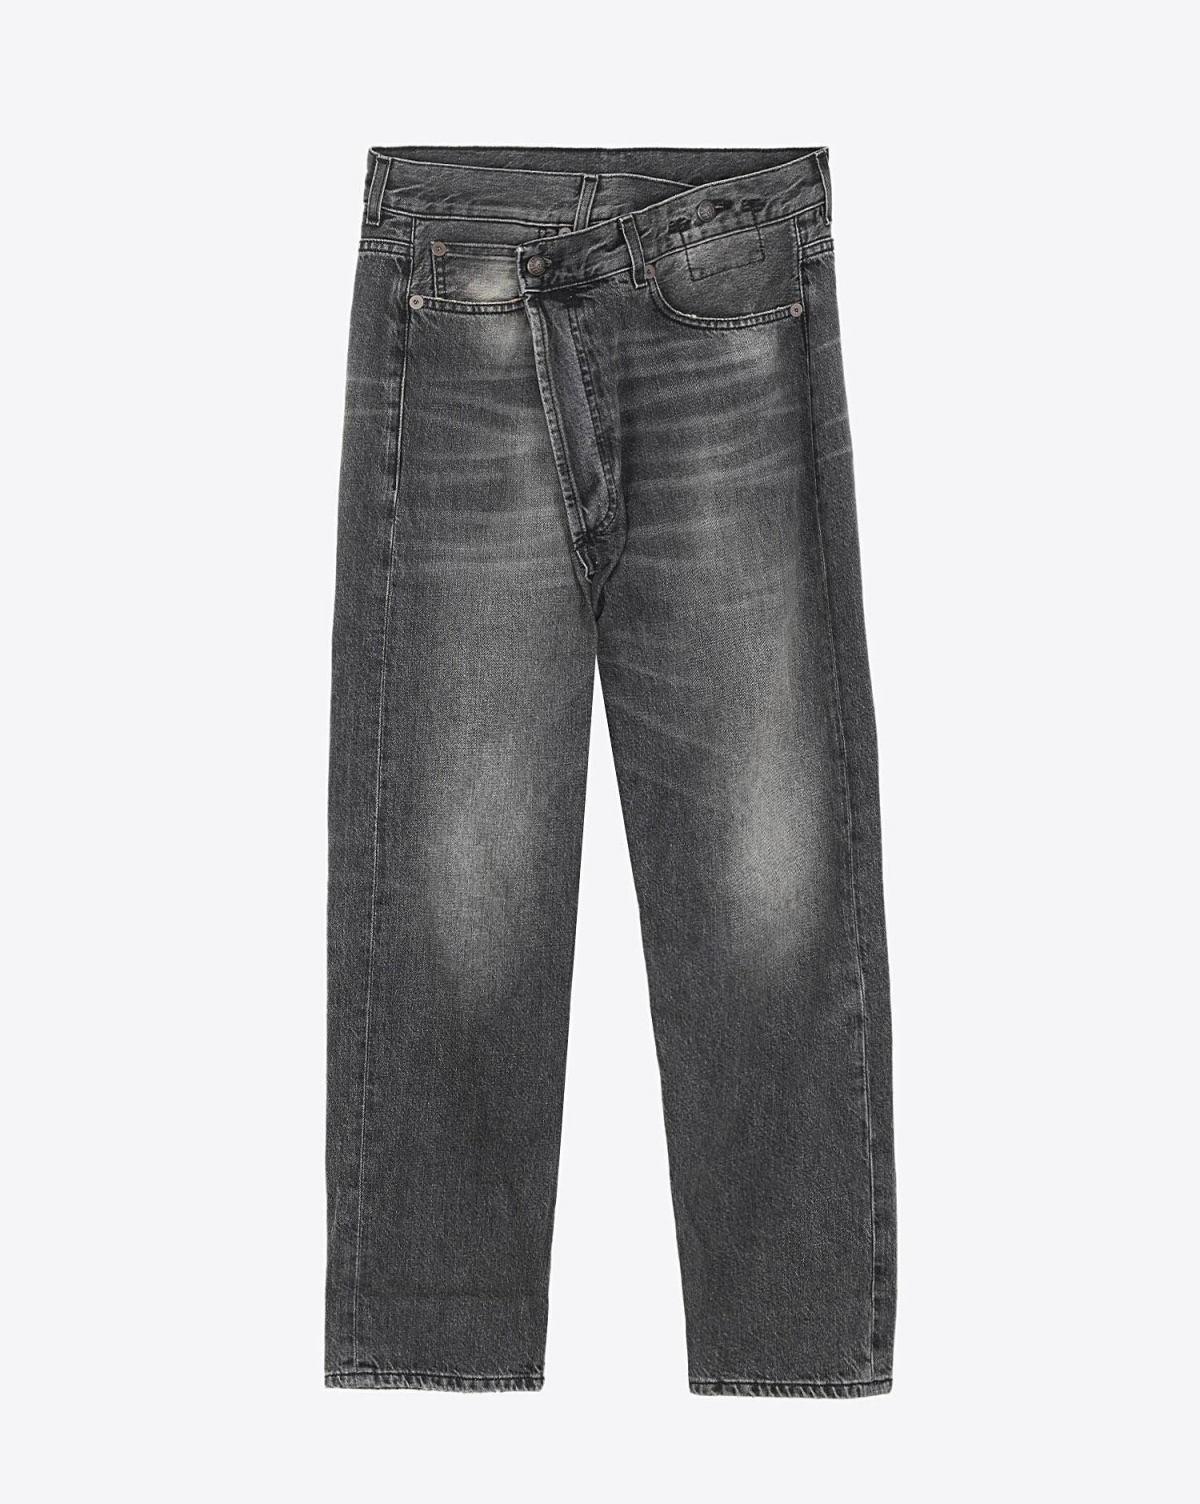 R13 Denim Permanent Crossover Jean - Leyton Black